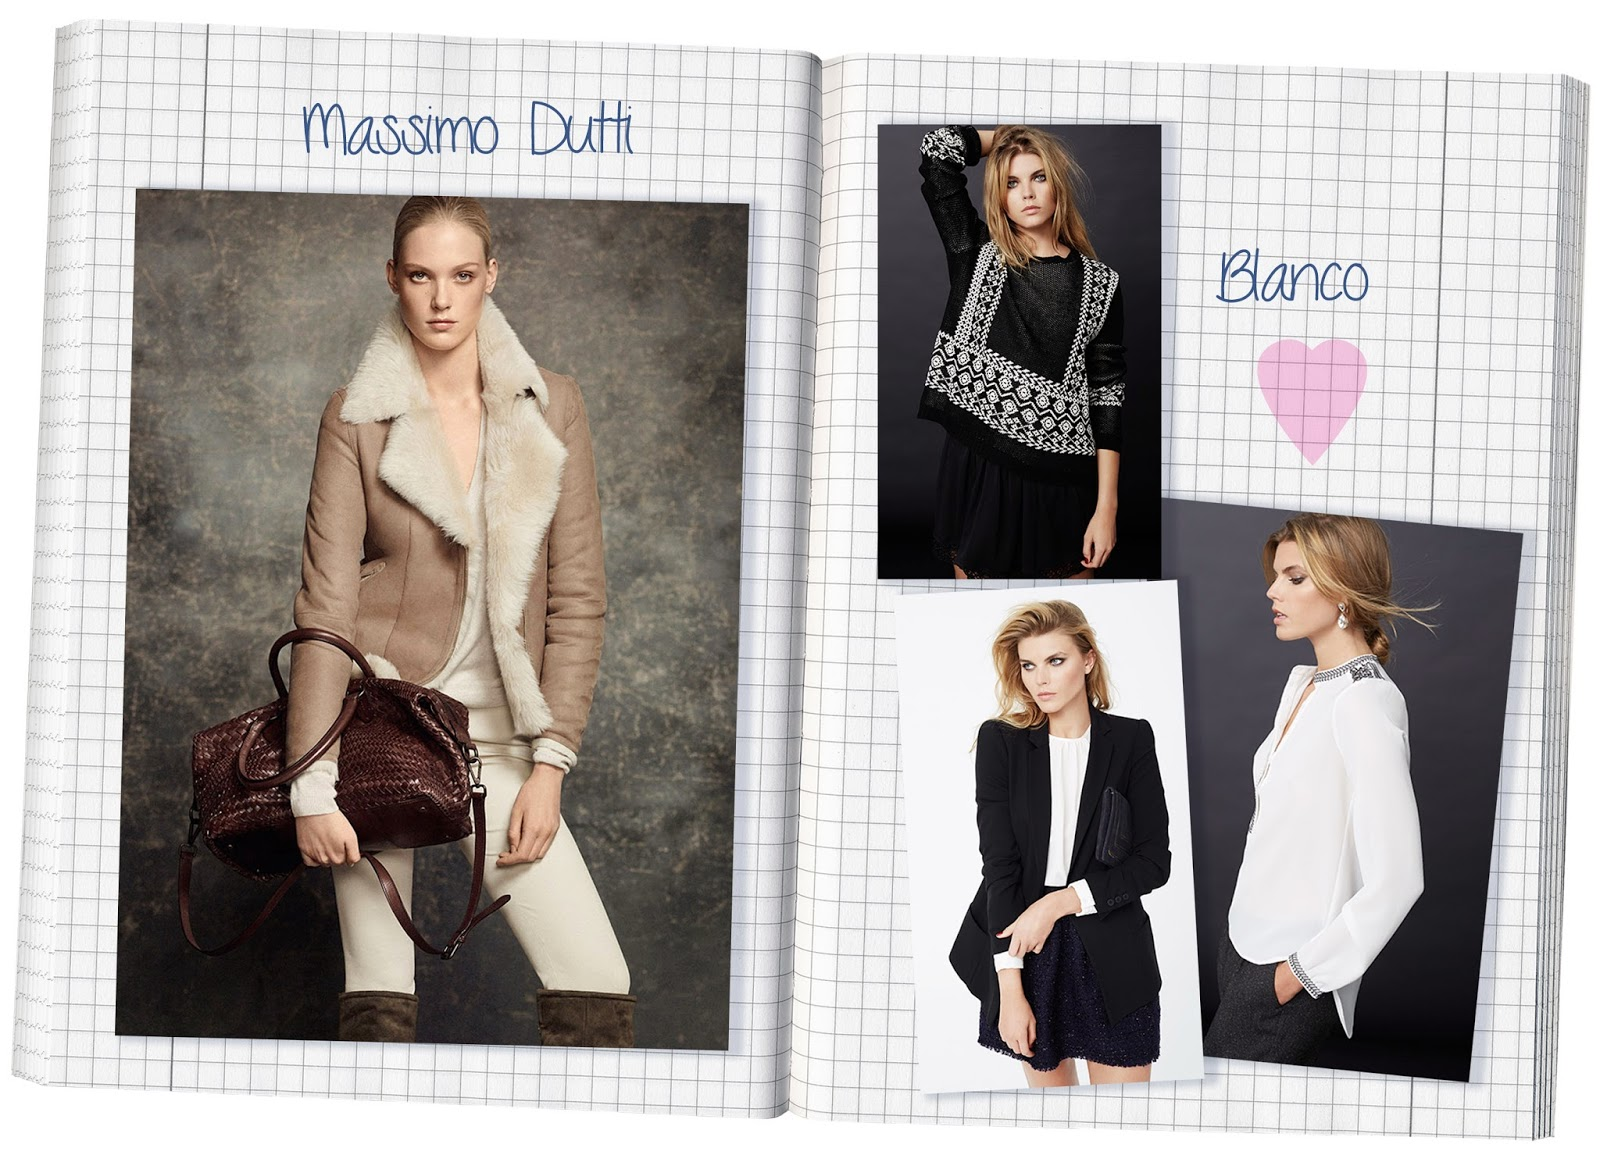 photo-lookbook-avance-colecciones-OI14-massimo_dutti-blanco